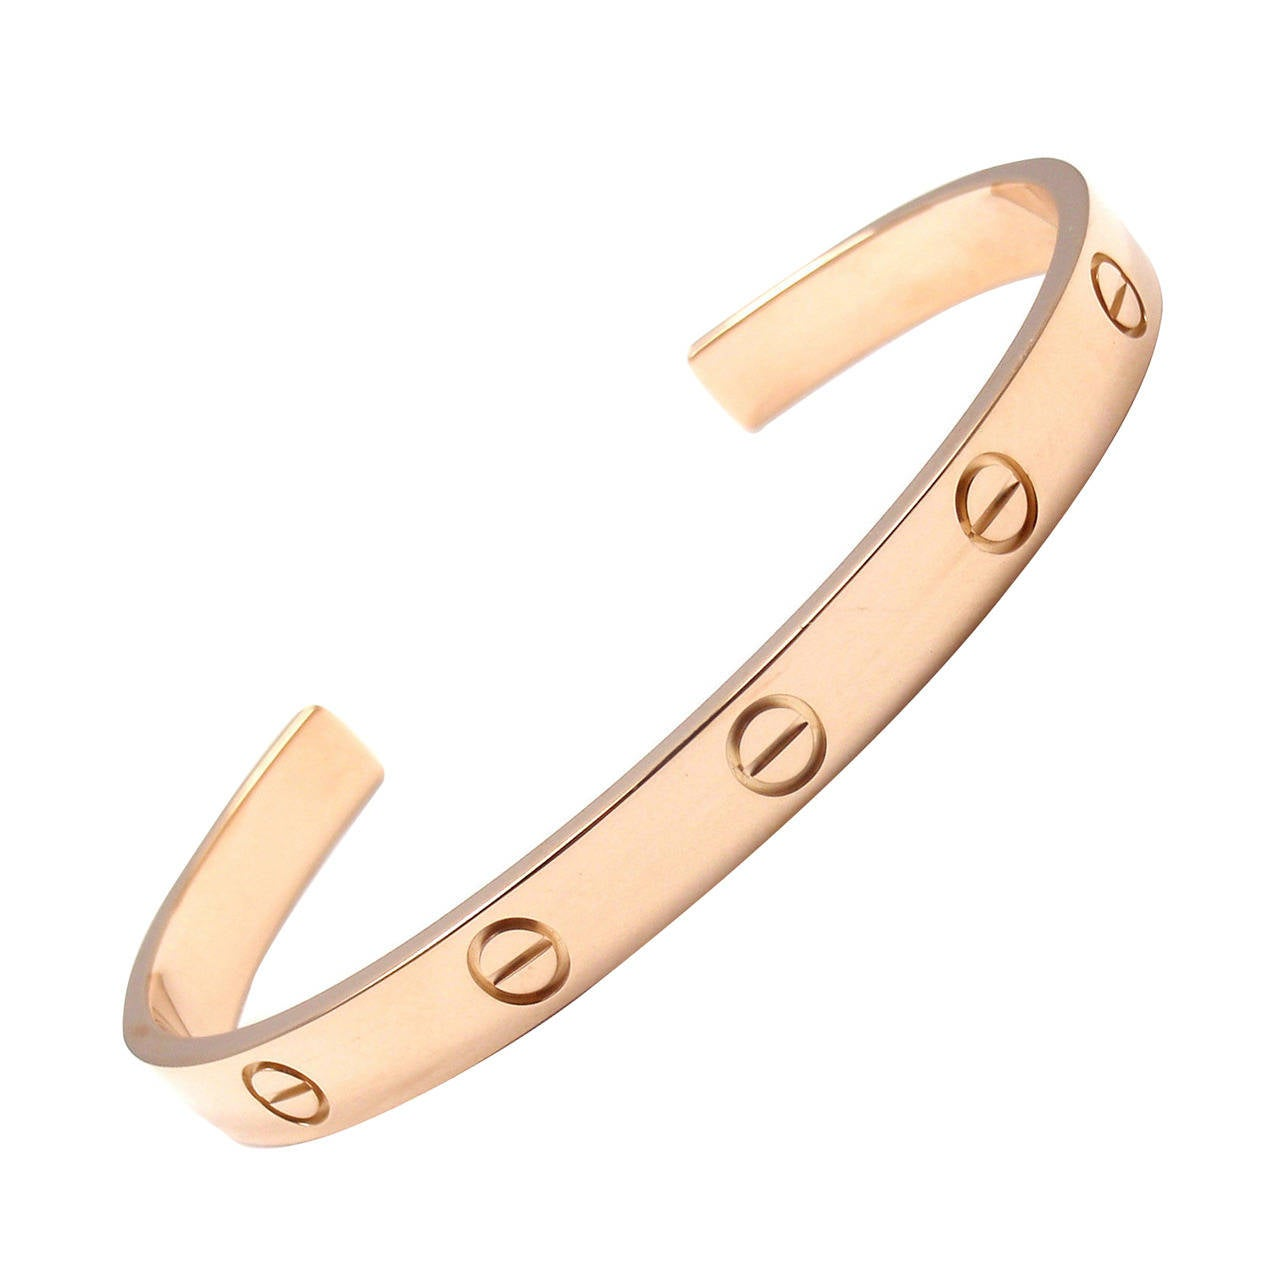 main rsp com open gold bangles at johnlewis john bangle buycluse rose hexagonal pdp lewis online cluse